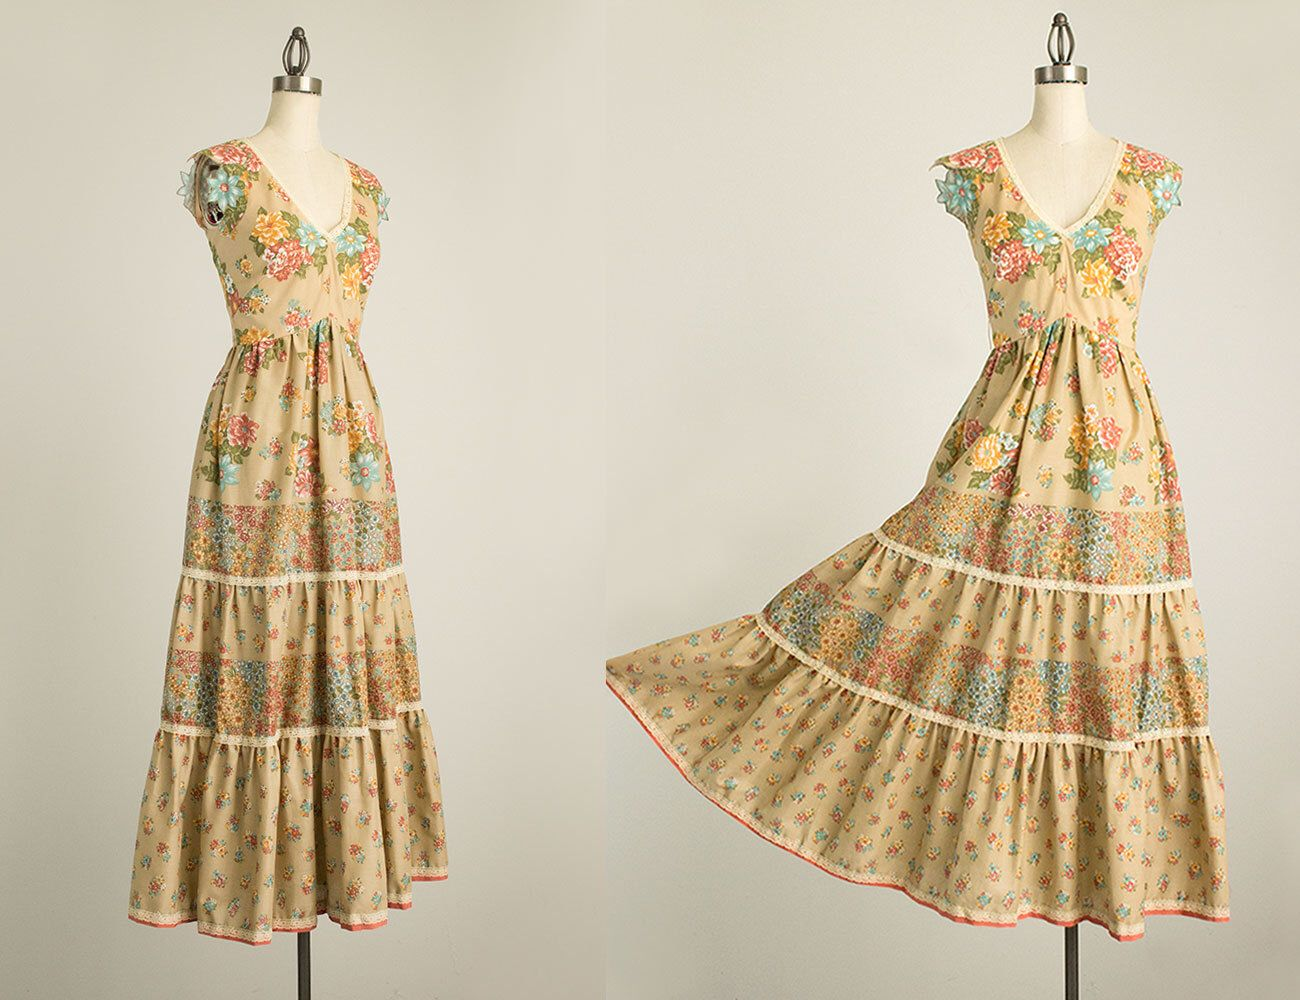 Floral print wedding dresses  s Vintage Victor Costa Floral Print Cotton Maxi Length Prairie Day